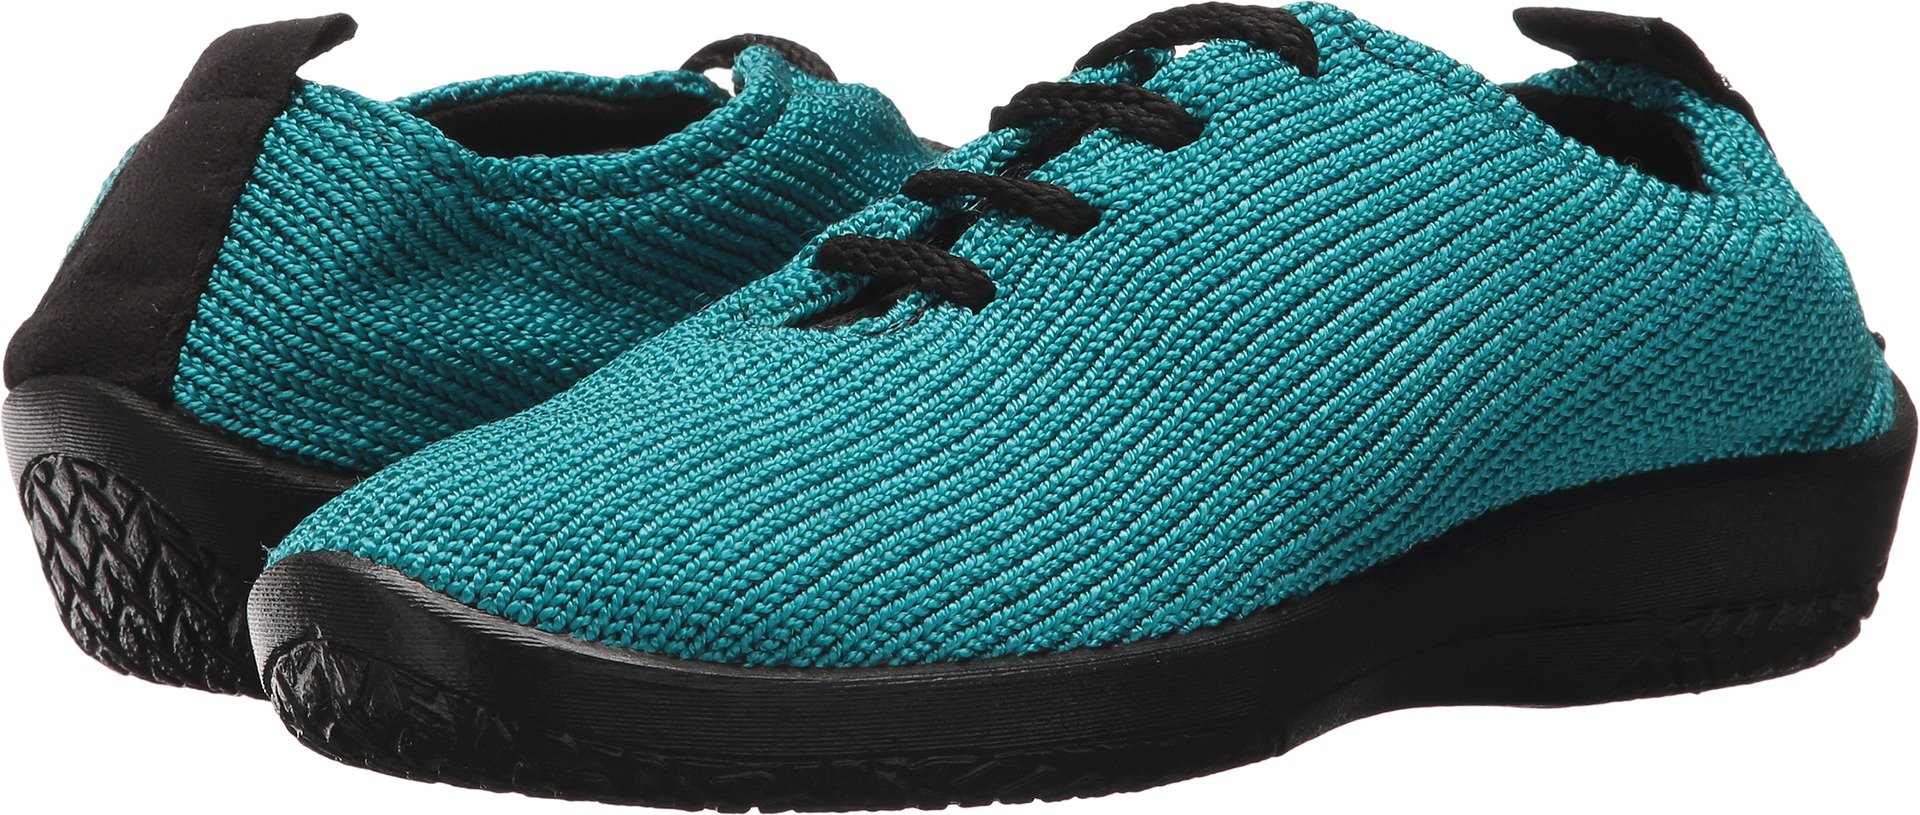 Arcopedico Womens LS Tie Knit Turquoise Oxford - 41